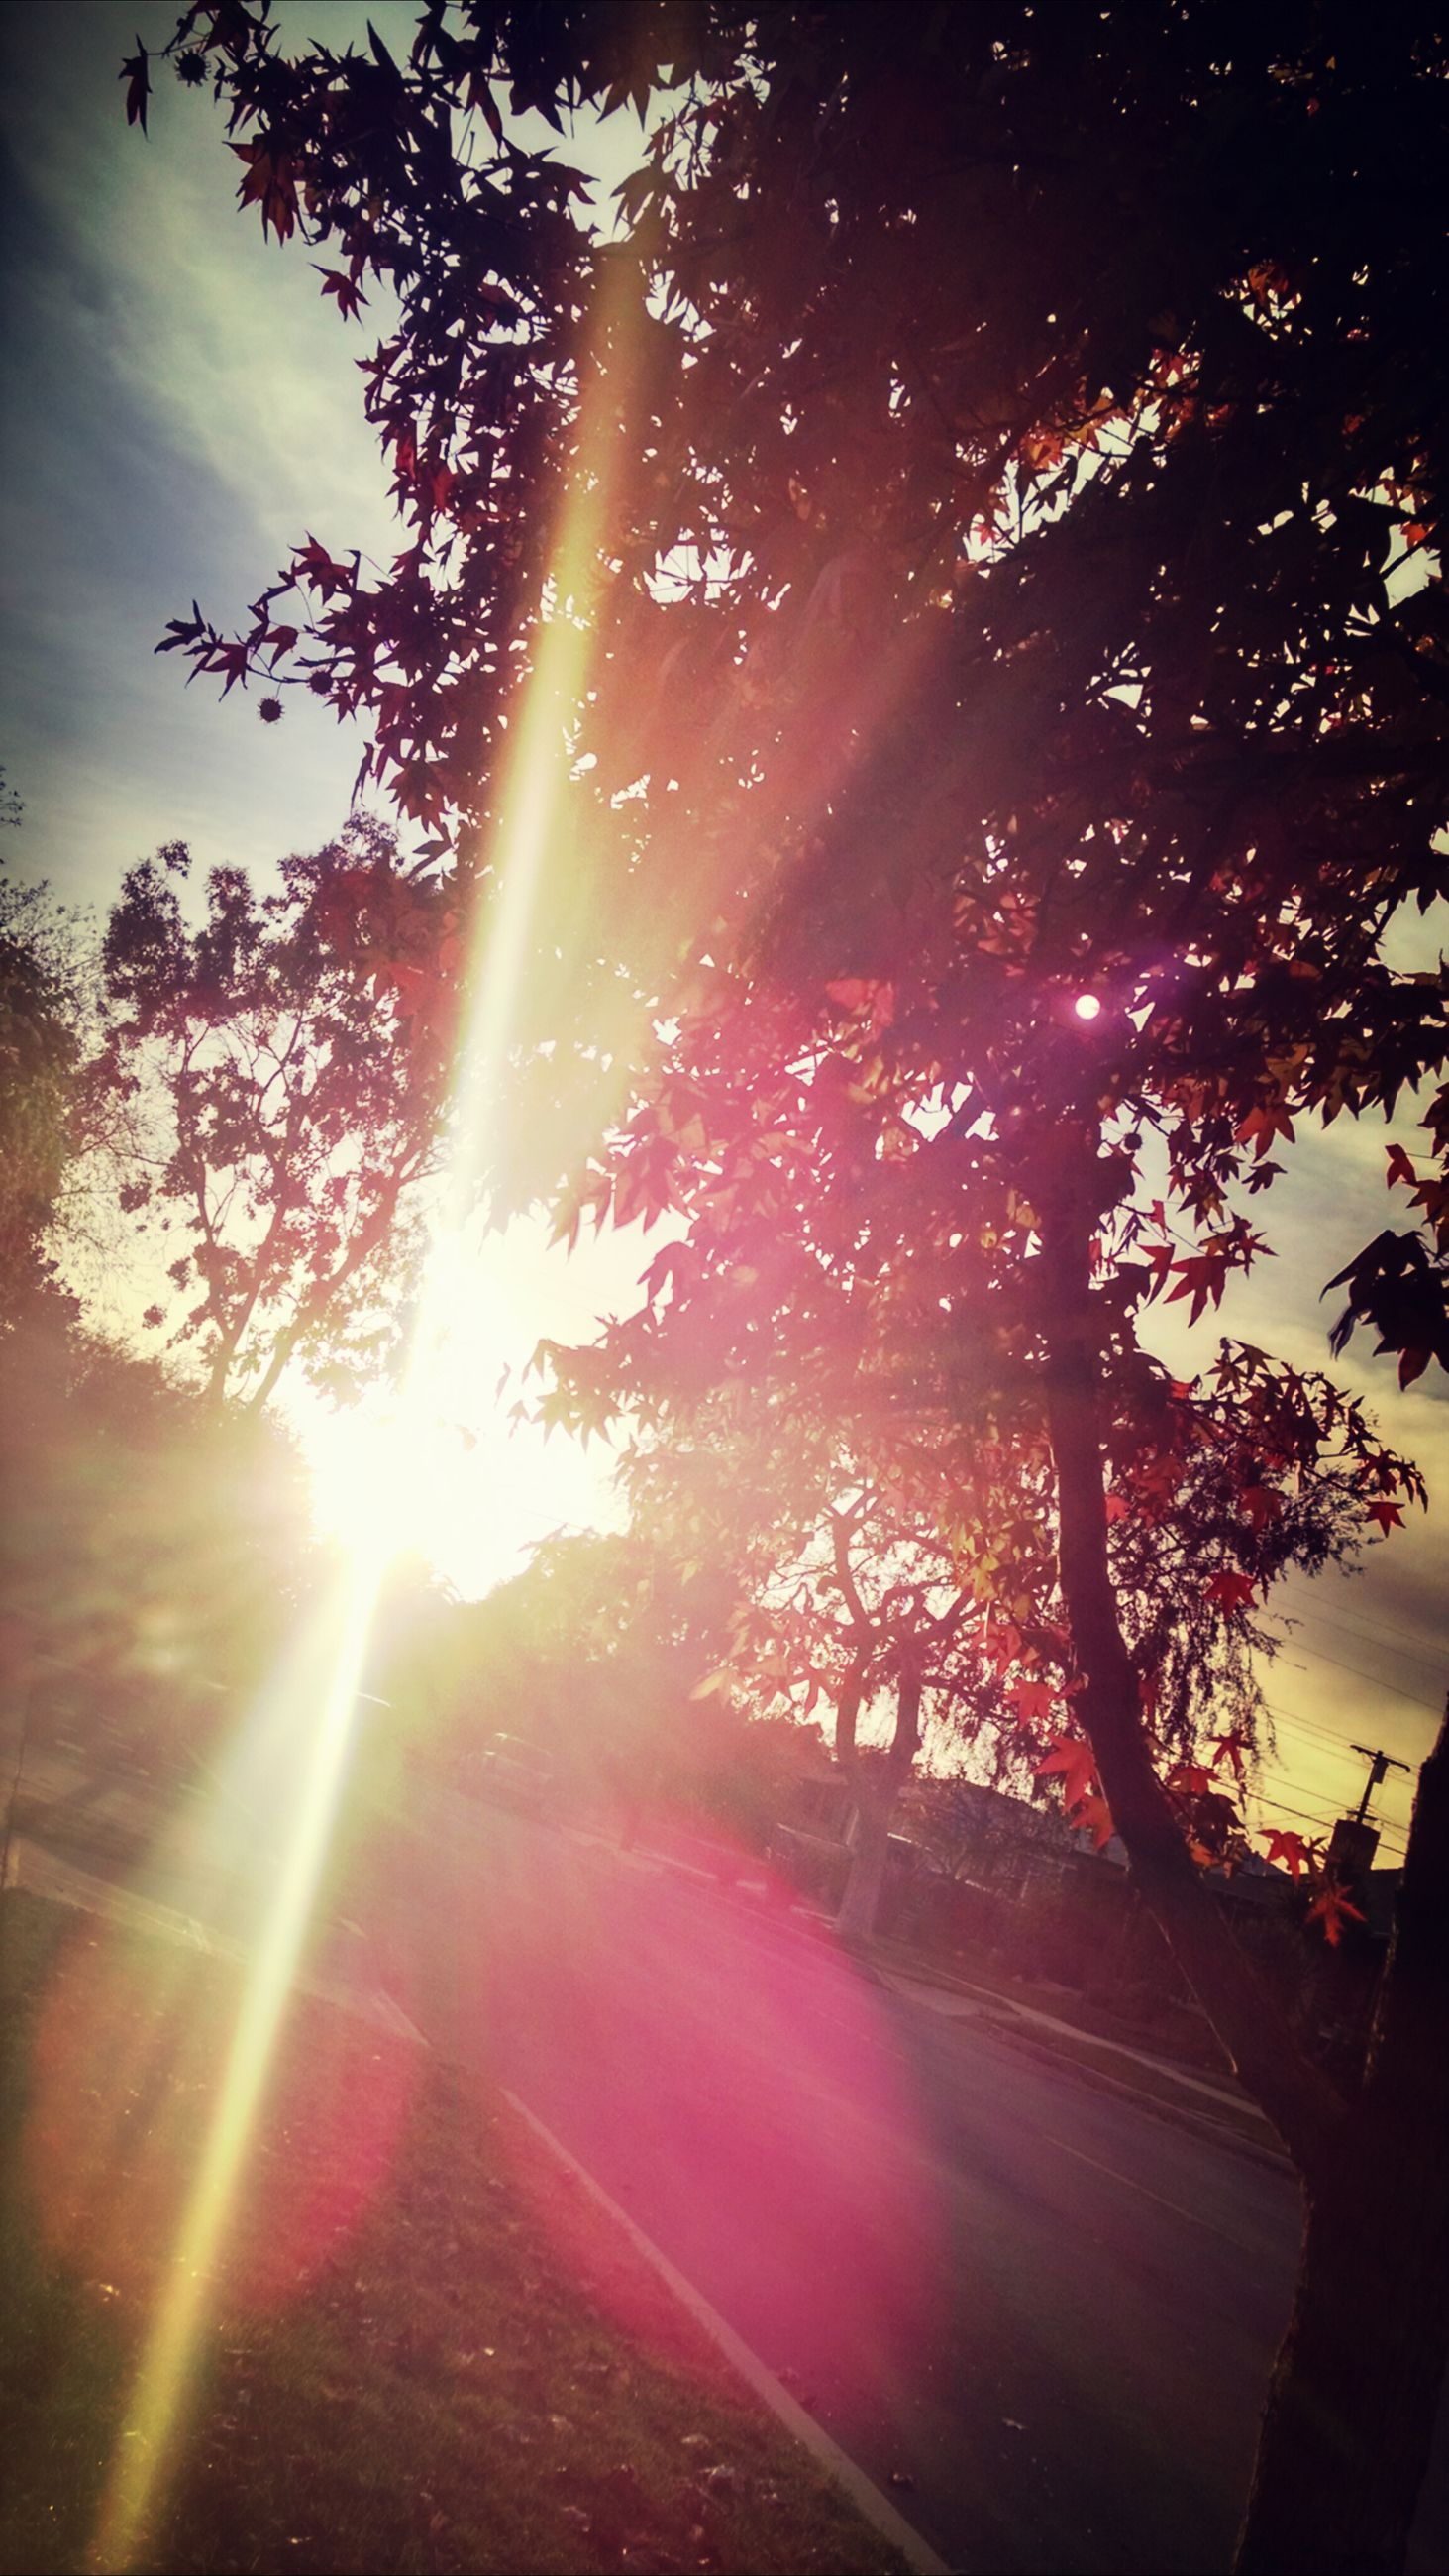 sun, sunbeam, tree, lens flare, sunlight, sky, tranquility, bright, beauty in nature, nature, tranquil scene, back lit, scenics, growth, sunny, low angle view, sunset, streaming, silhouette, shining